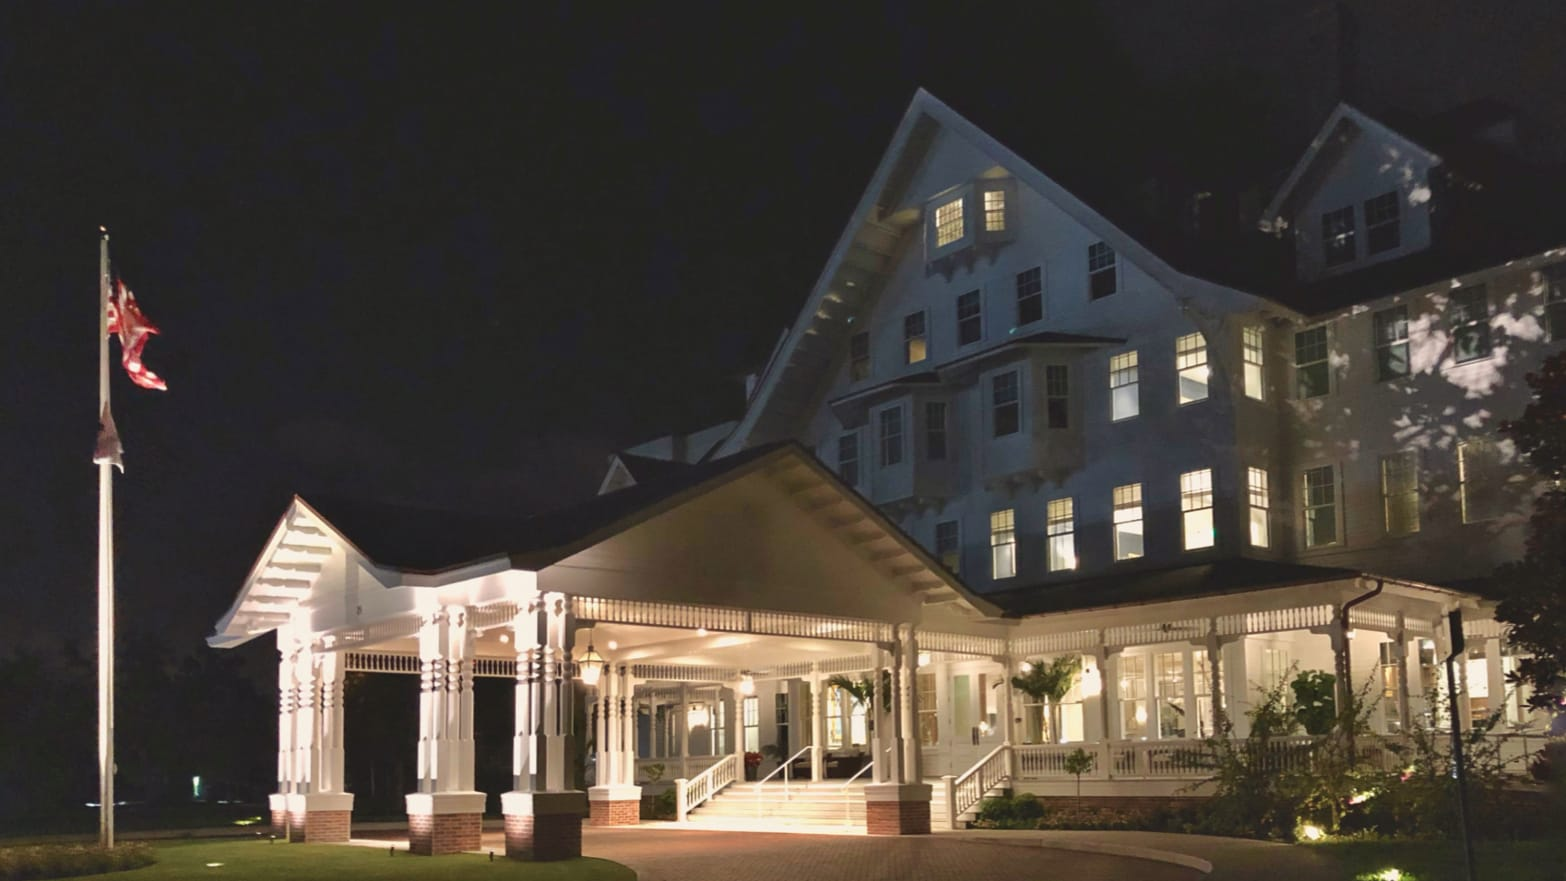 Belleview Inn: The Restored Florida Hotel that Embodies Gilded Age Grandeur